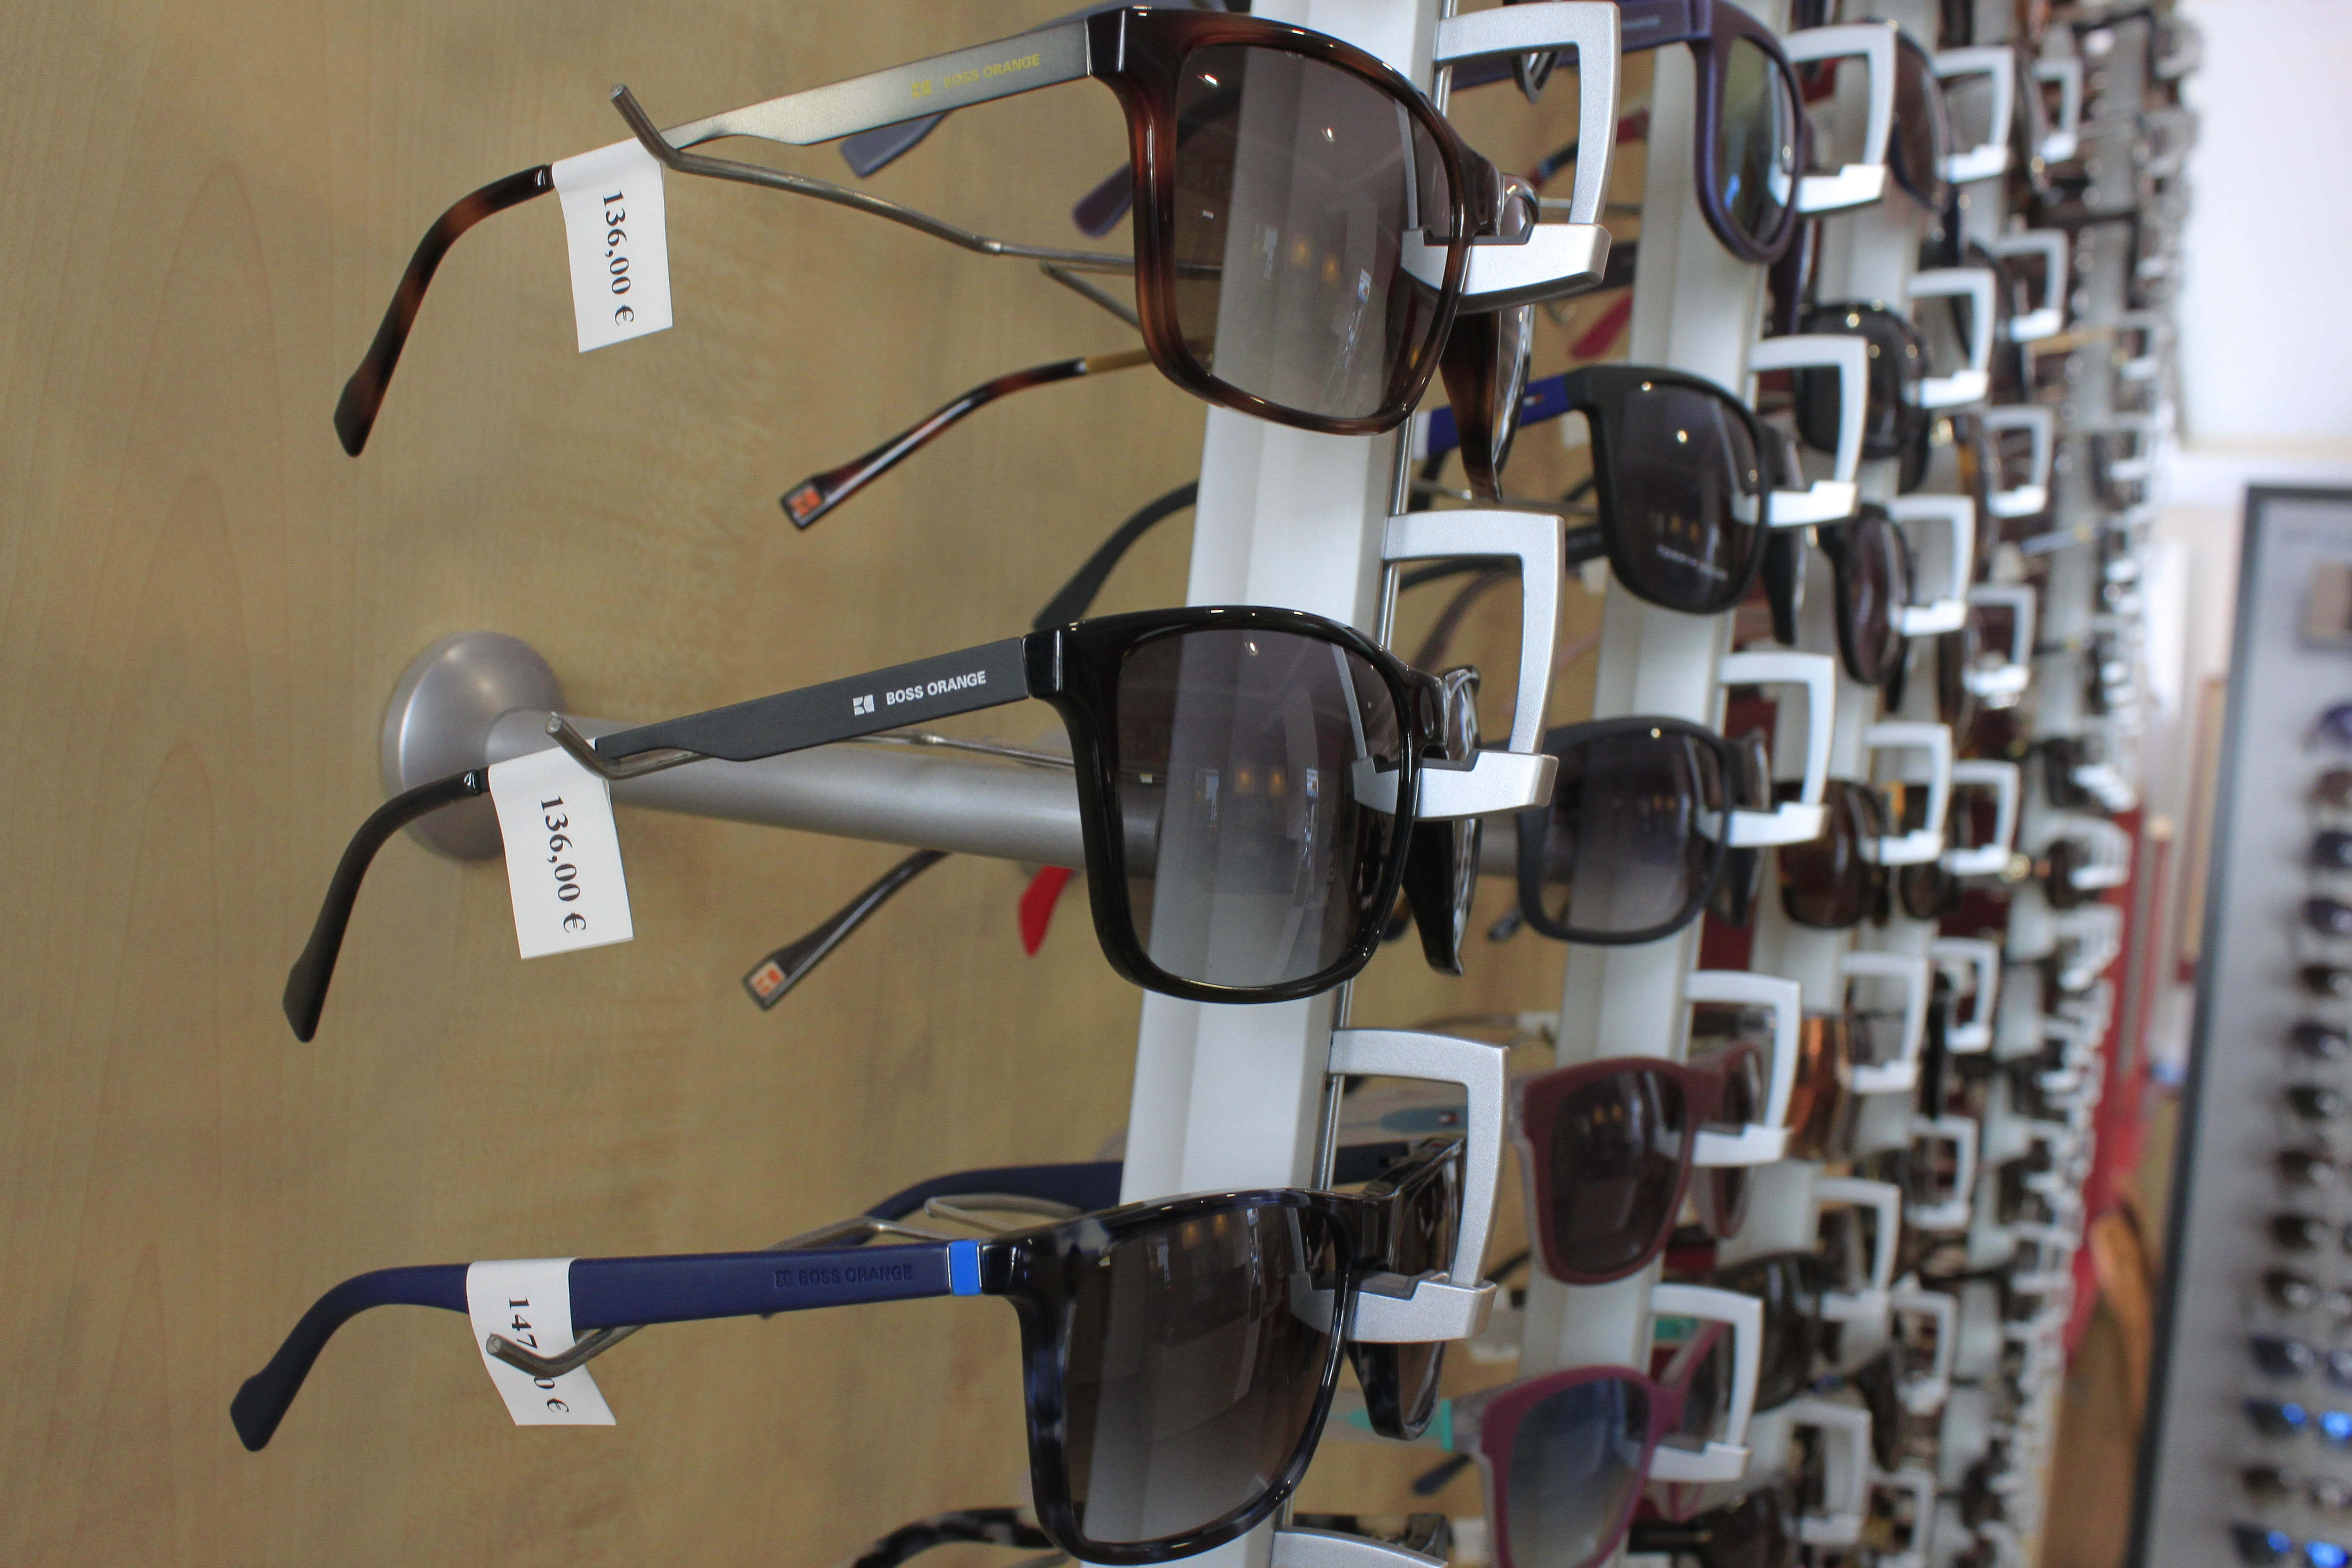 Case study - Opticians labelling